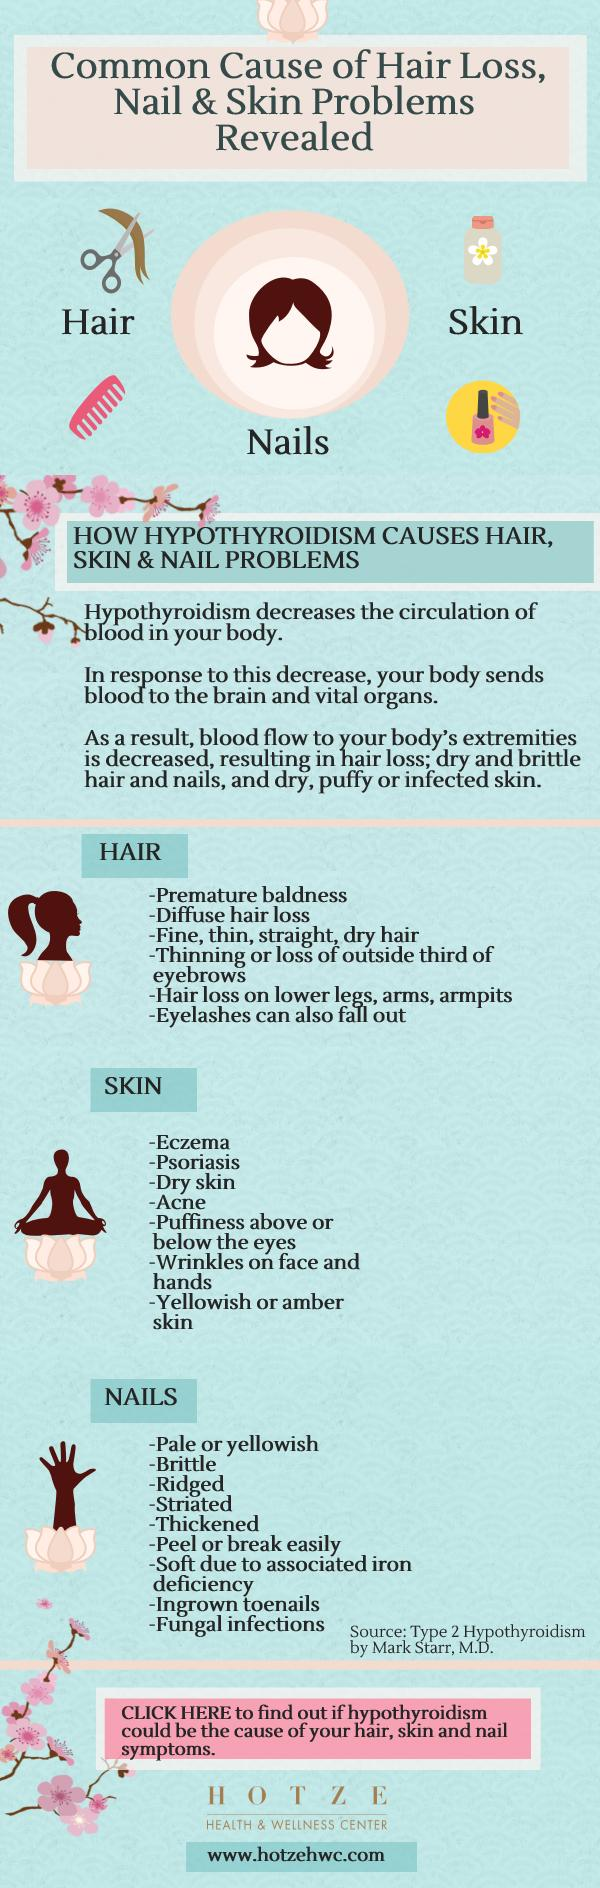 Common Cause of Hair Loss, Nail & Skin Problems Revealed